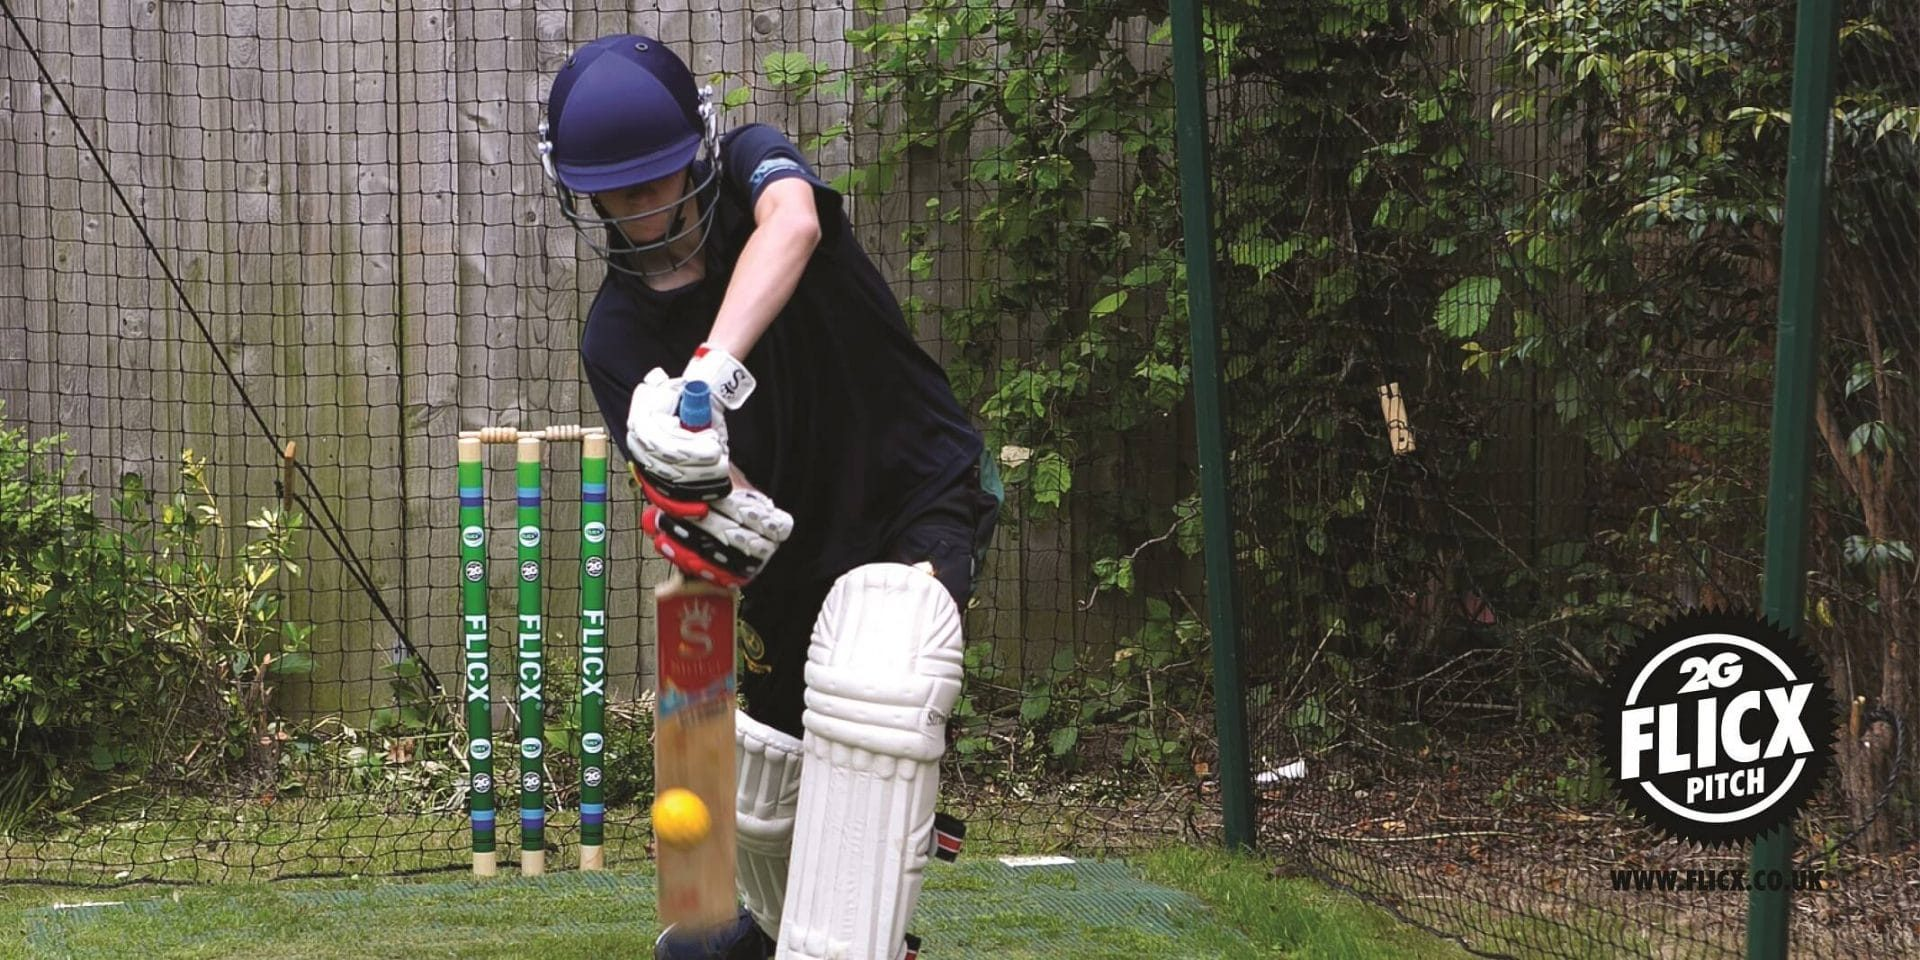 Cricket at Home | Flicx Home Academy